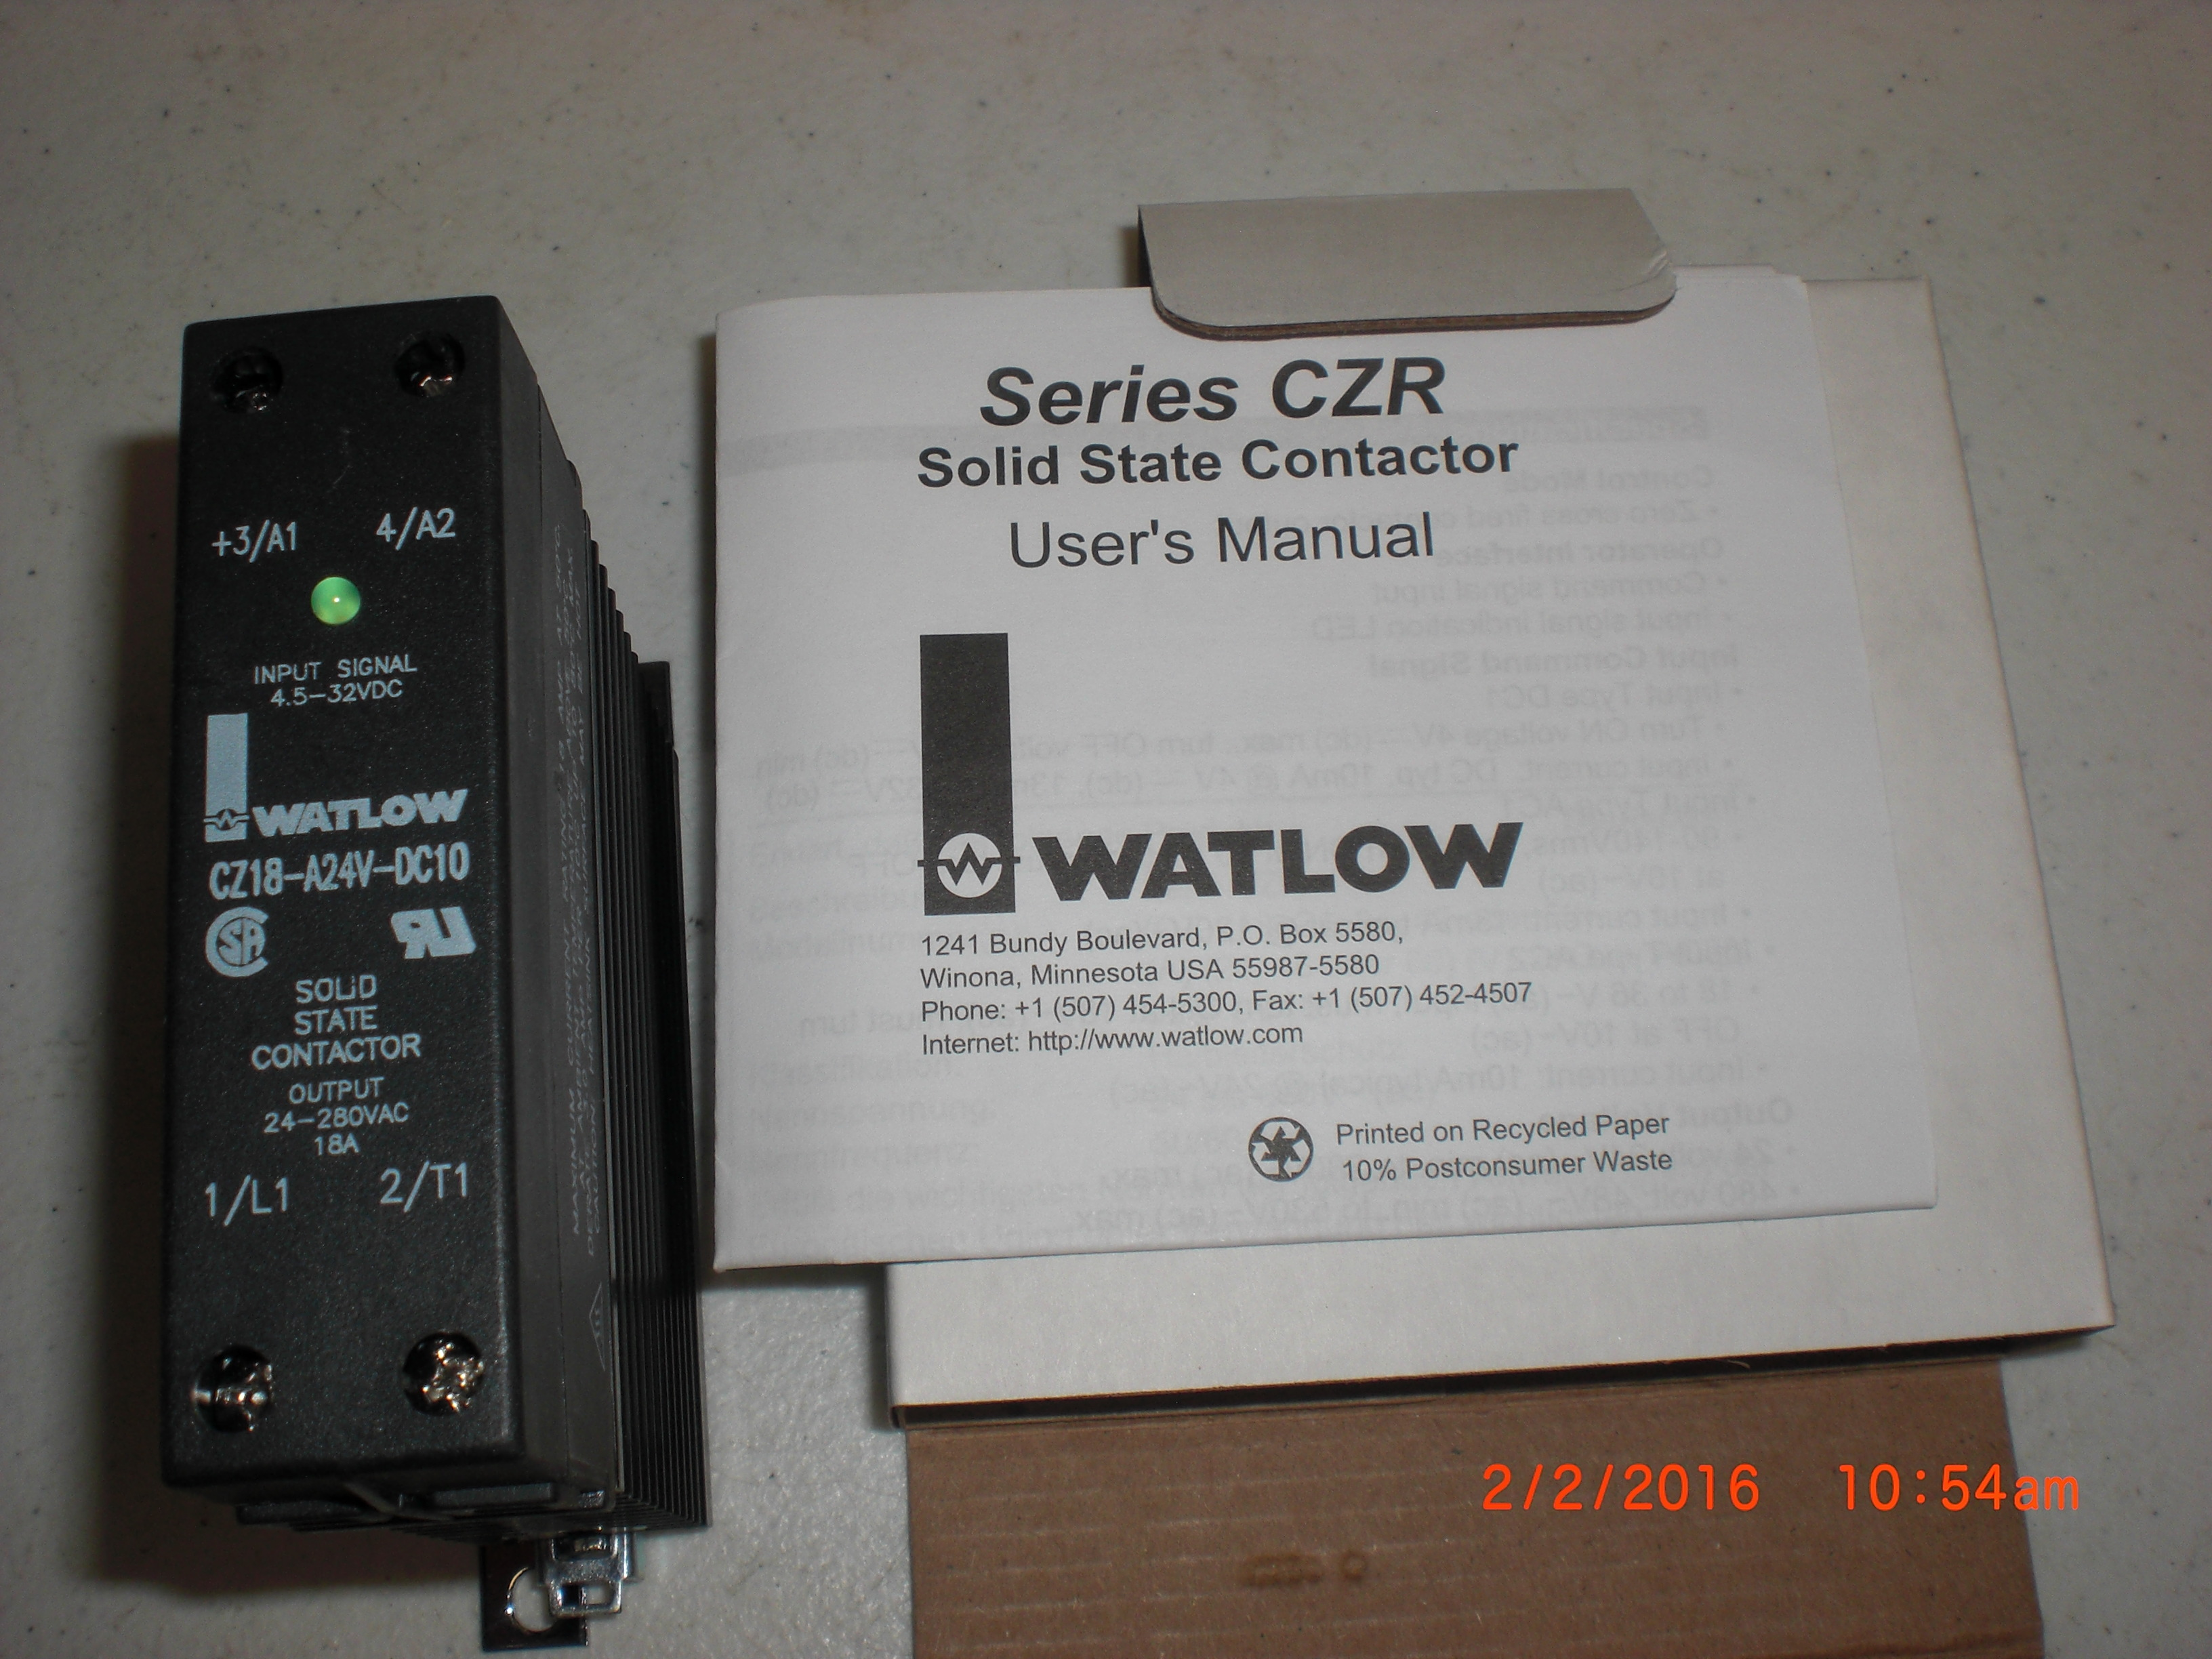 Heater Solid State Contactor WATLOW CZ18-24V-DC10